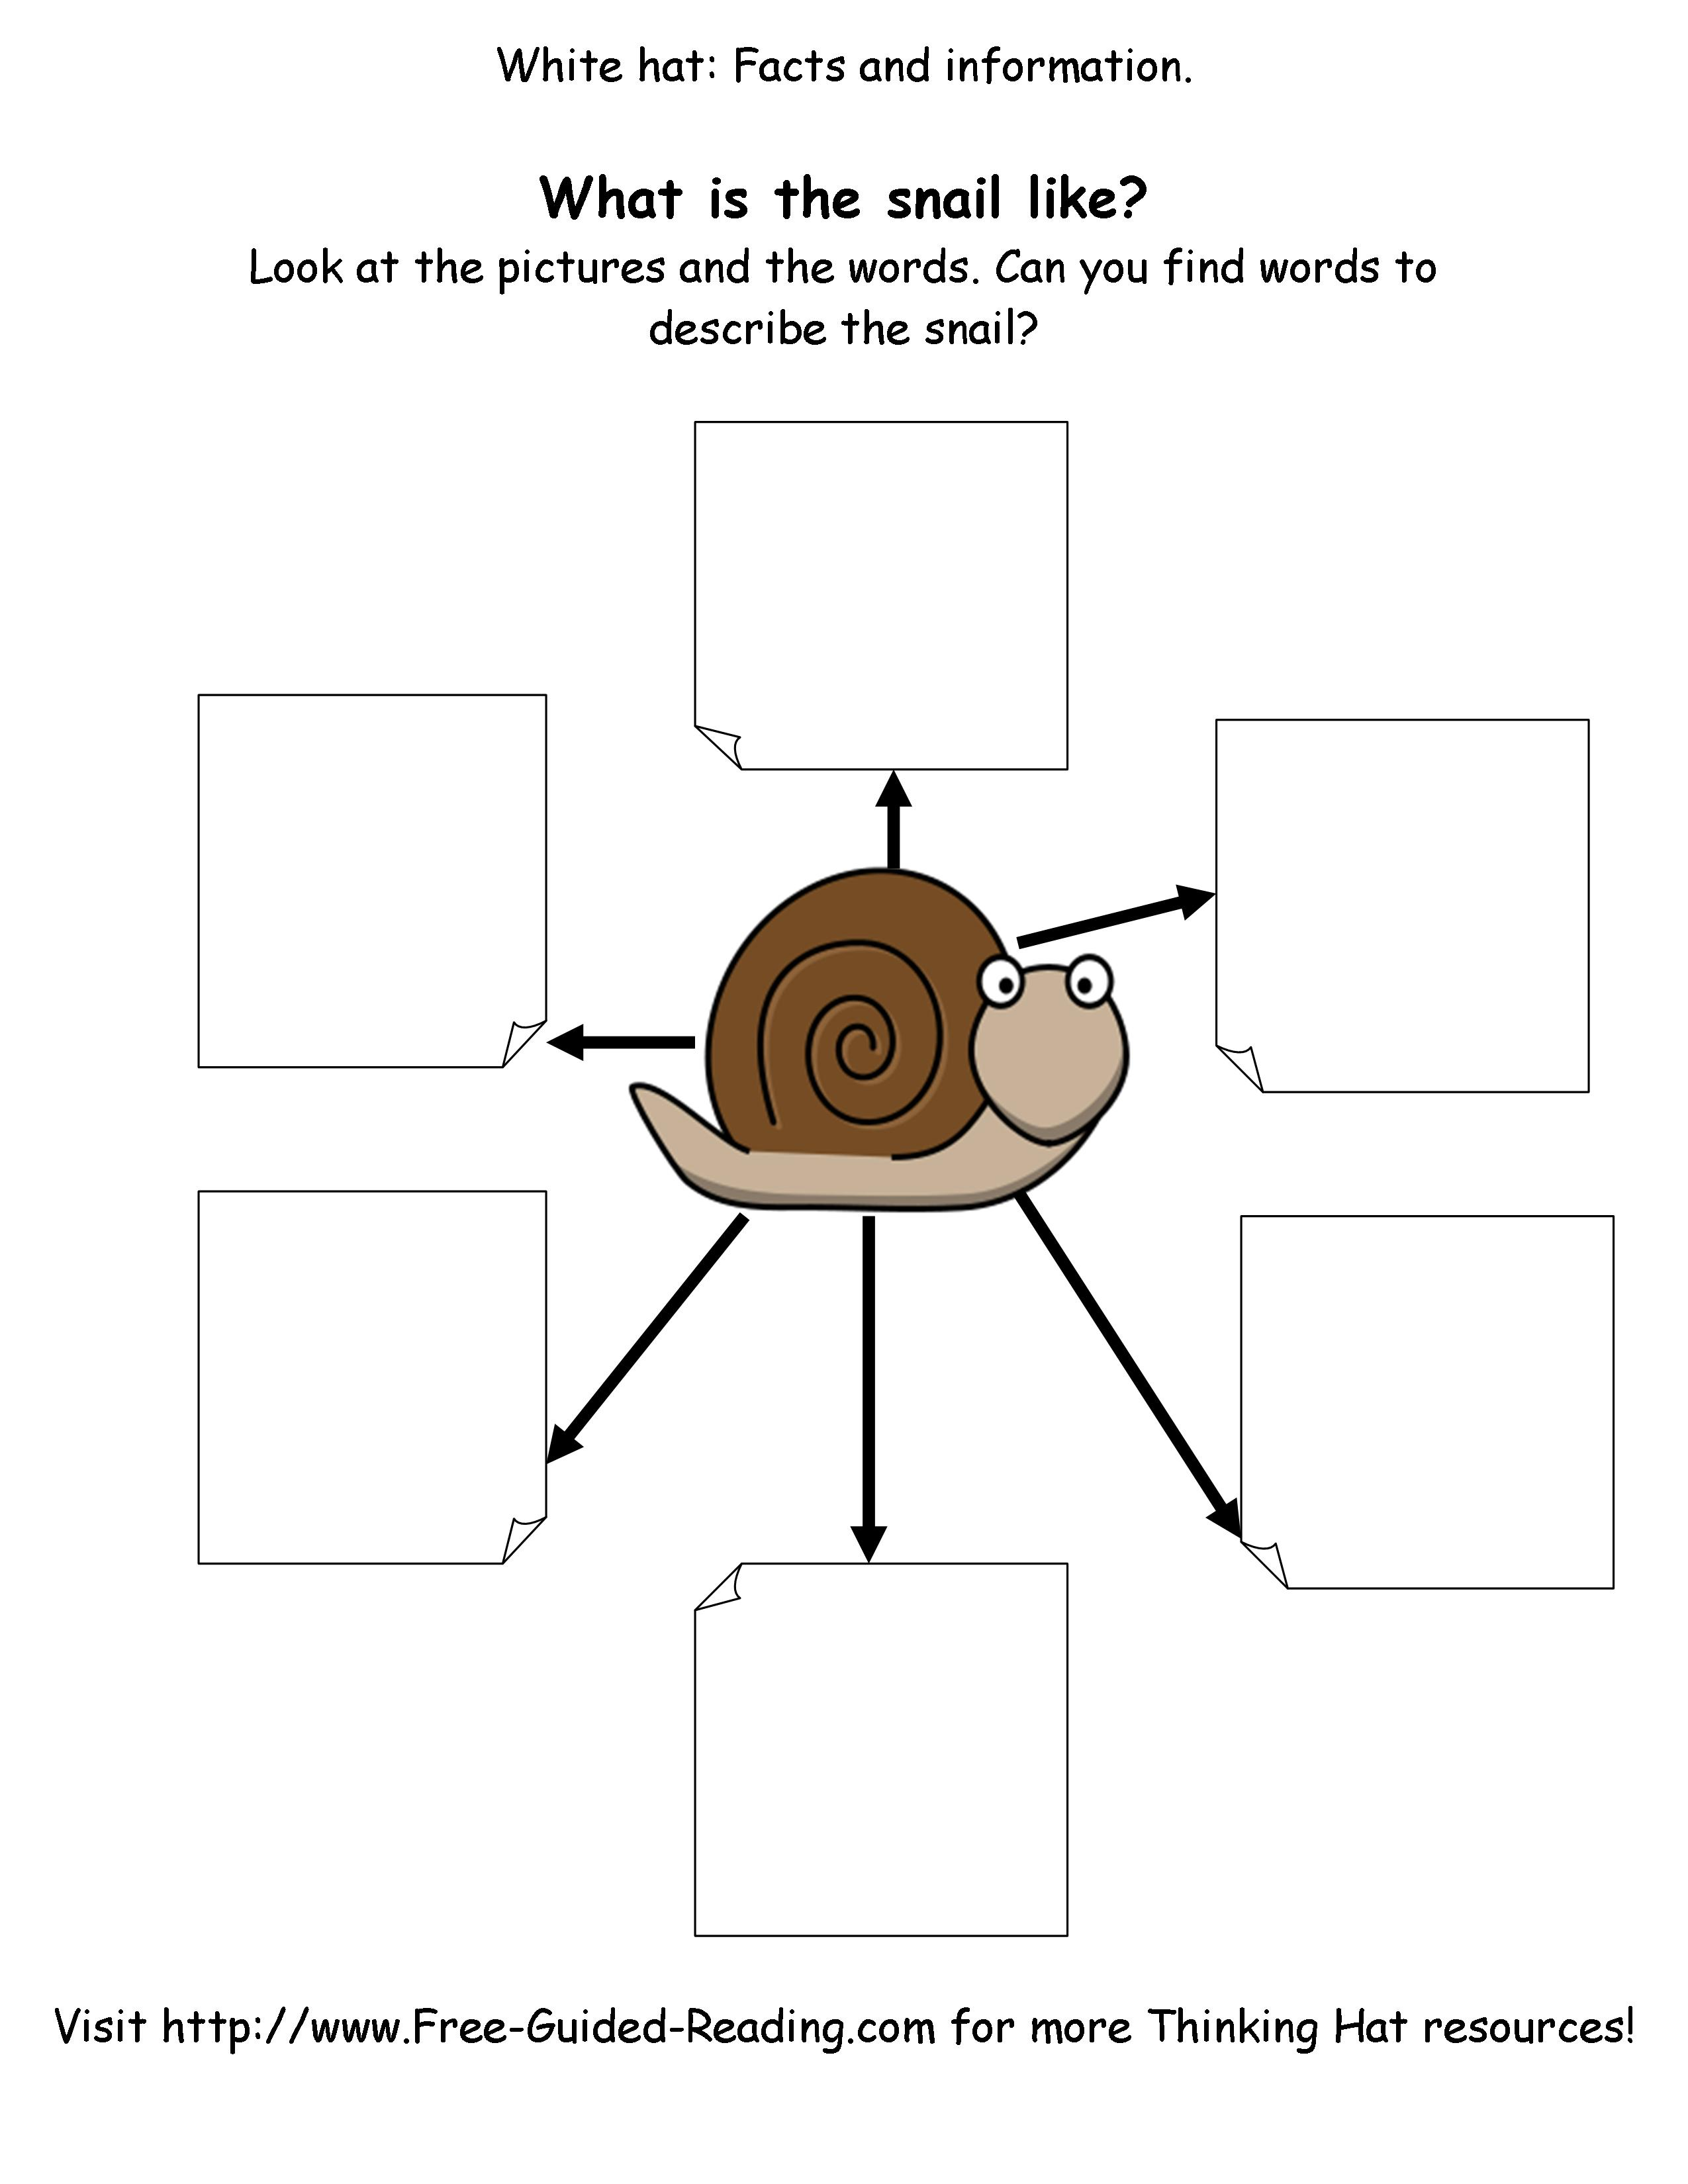 Smashwords 16 Thinking Hat Worksheets For The Snail And The Whale A Book By Peter Fogarty Page 1